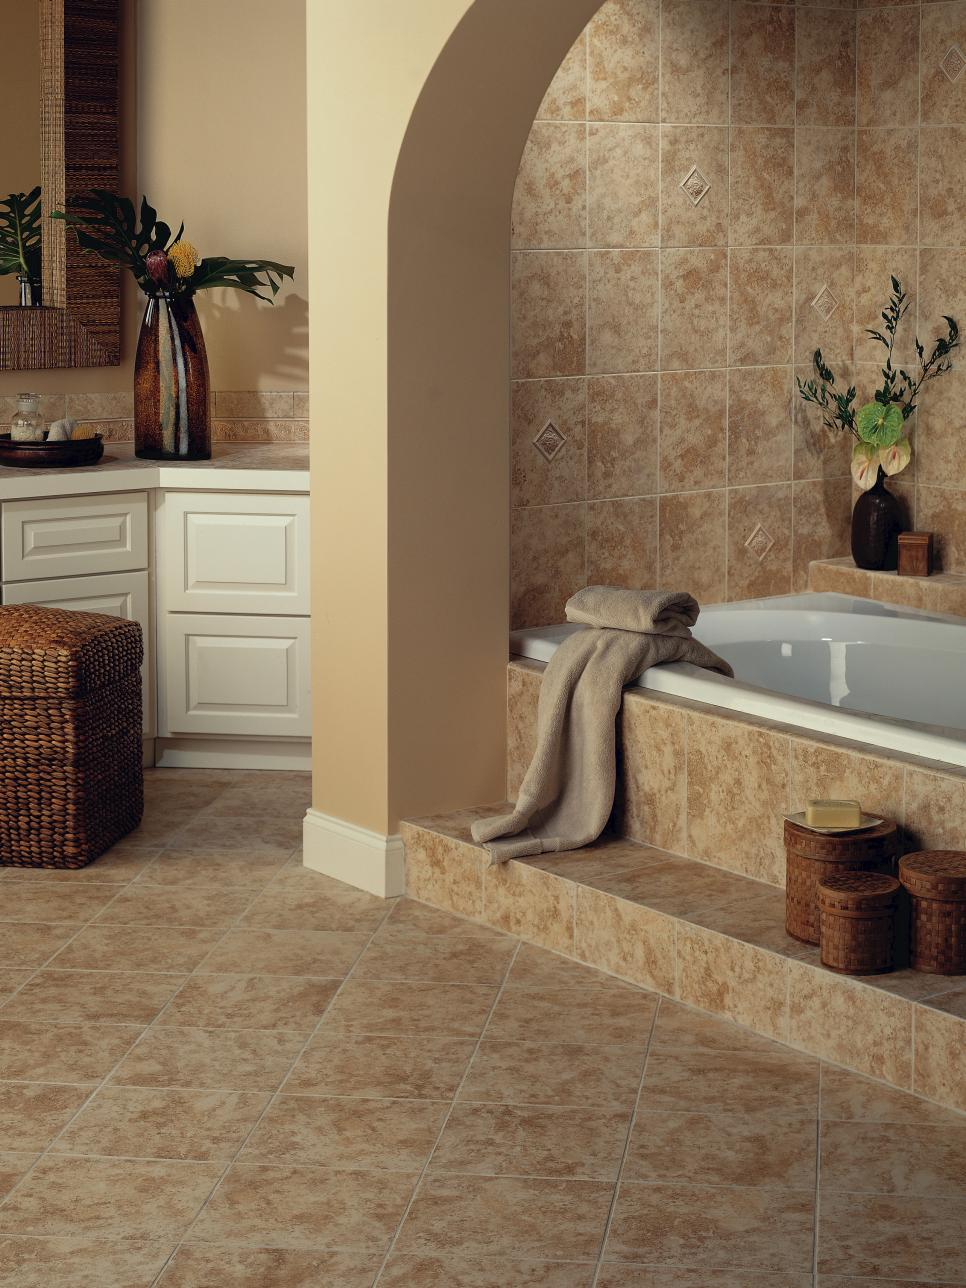 Bathroom Ceramic Tile Images : Ceramic tile bathroom floors hgtv